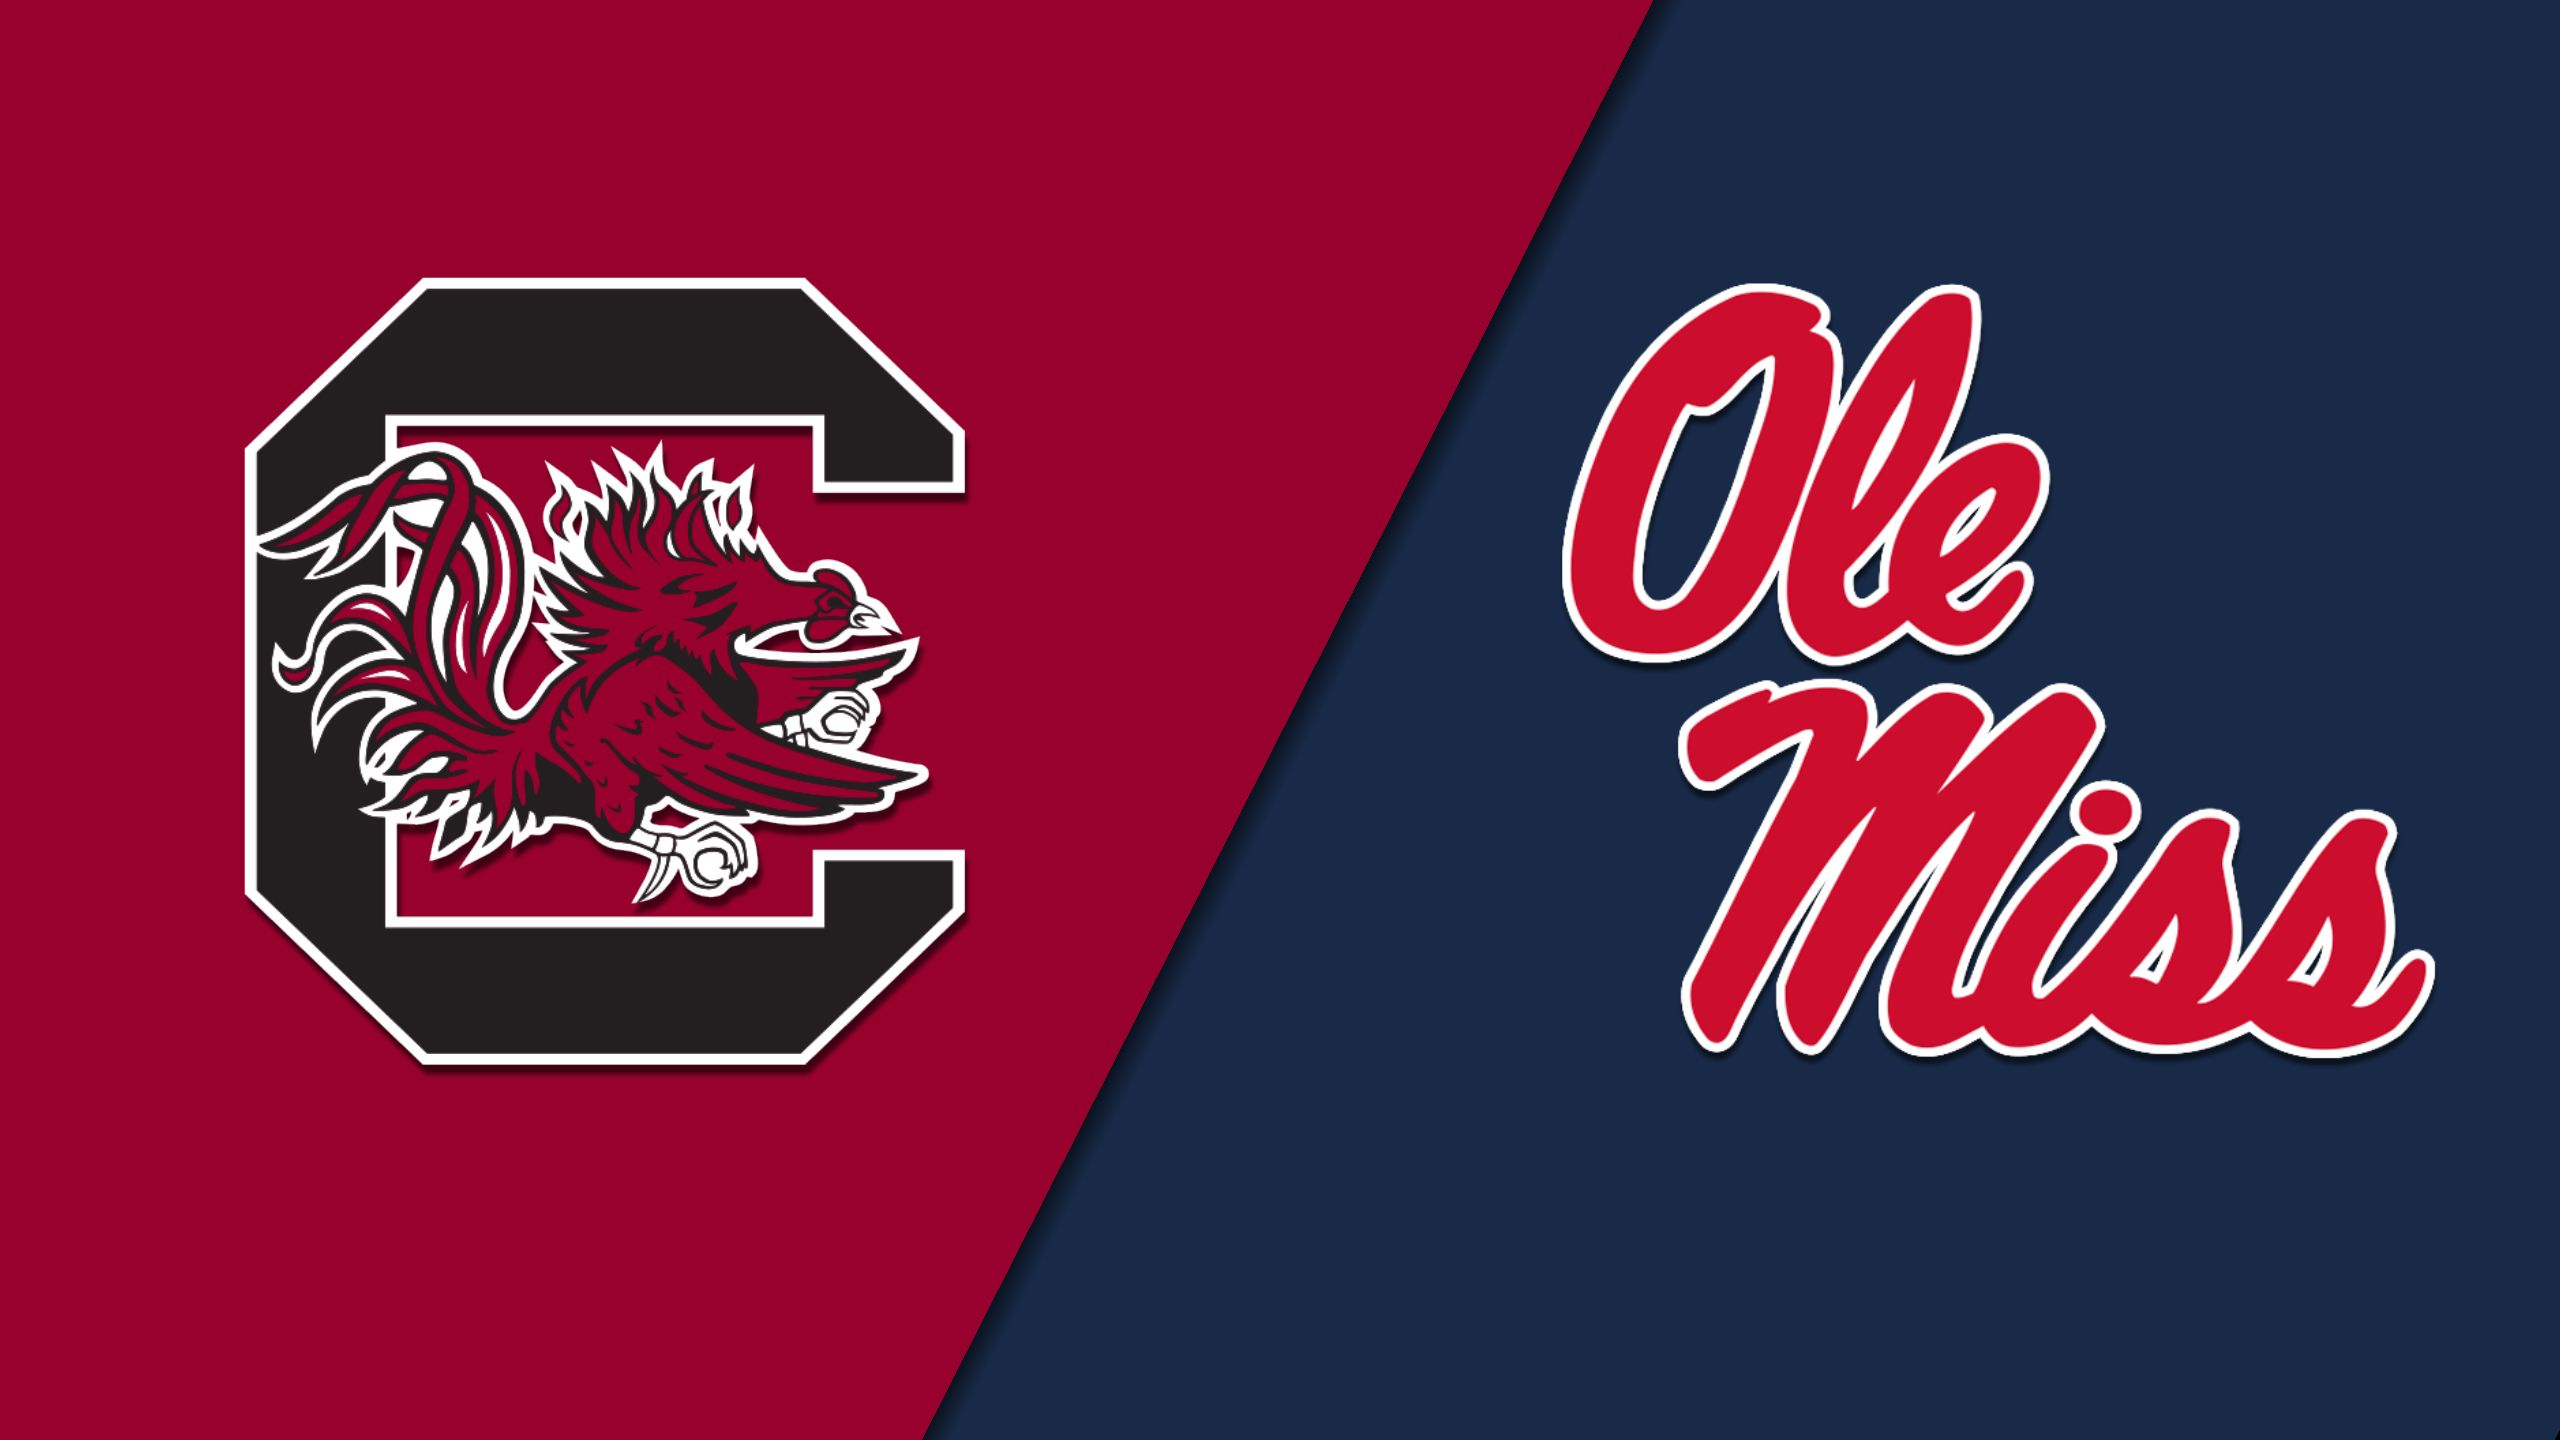 #17 South Carolina vs. #22 Ole Miss (Softball)